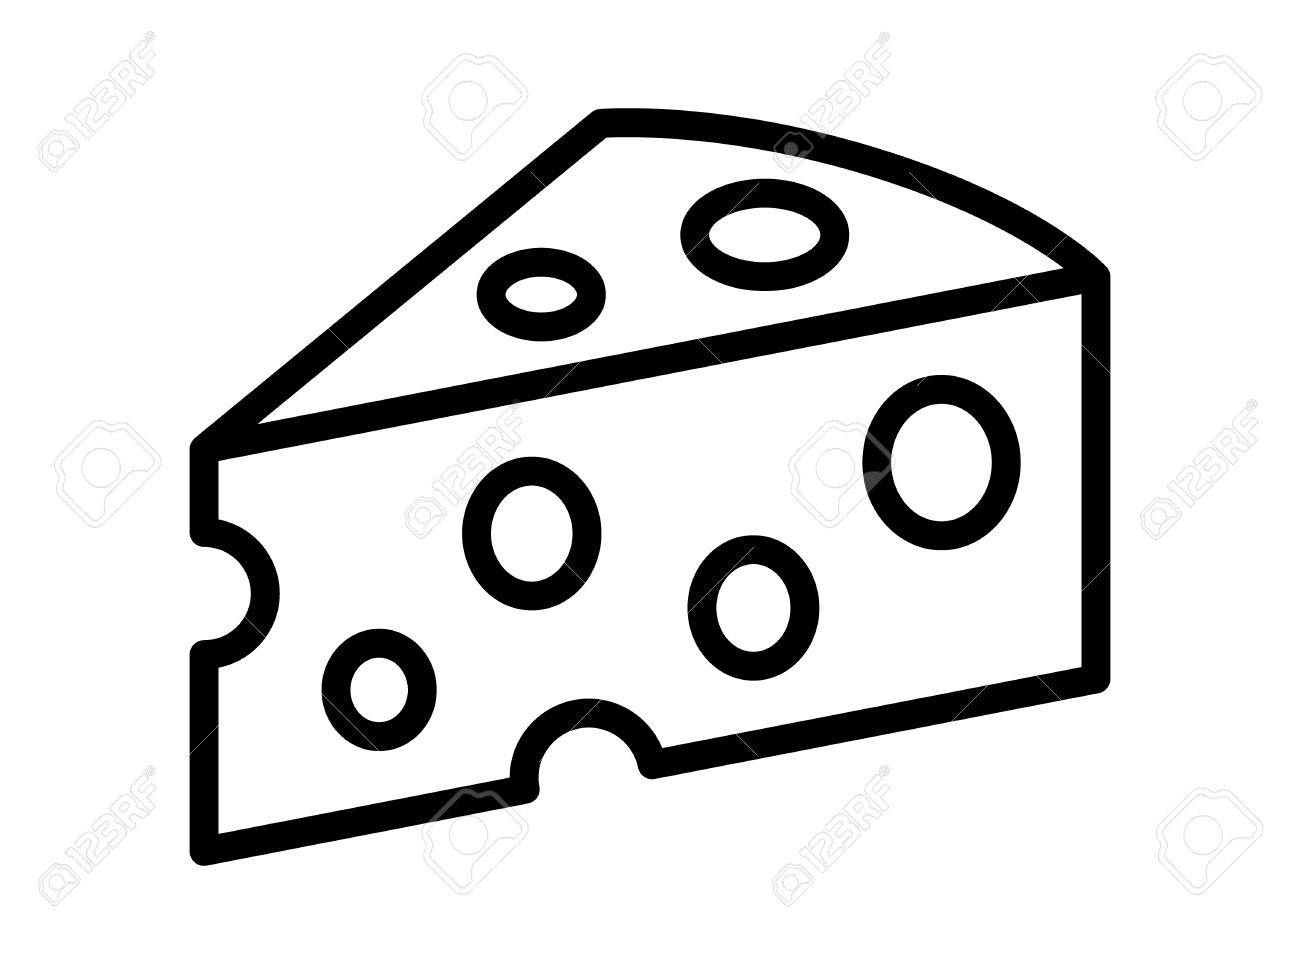 Cheese black and white clipart 5 » Clipart Station.